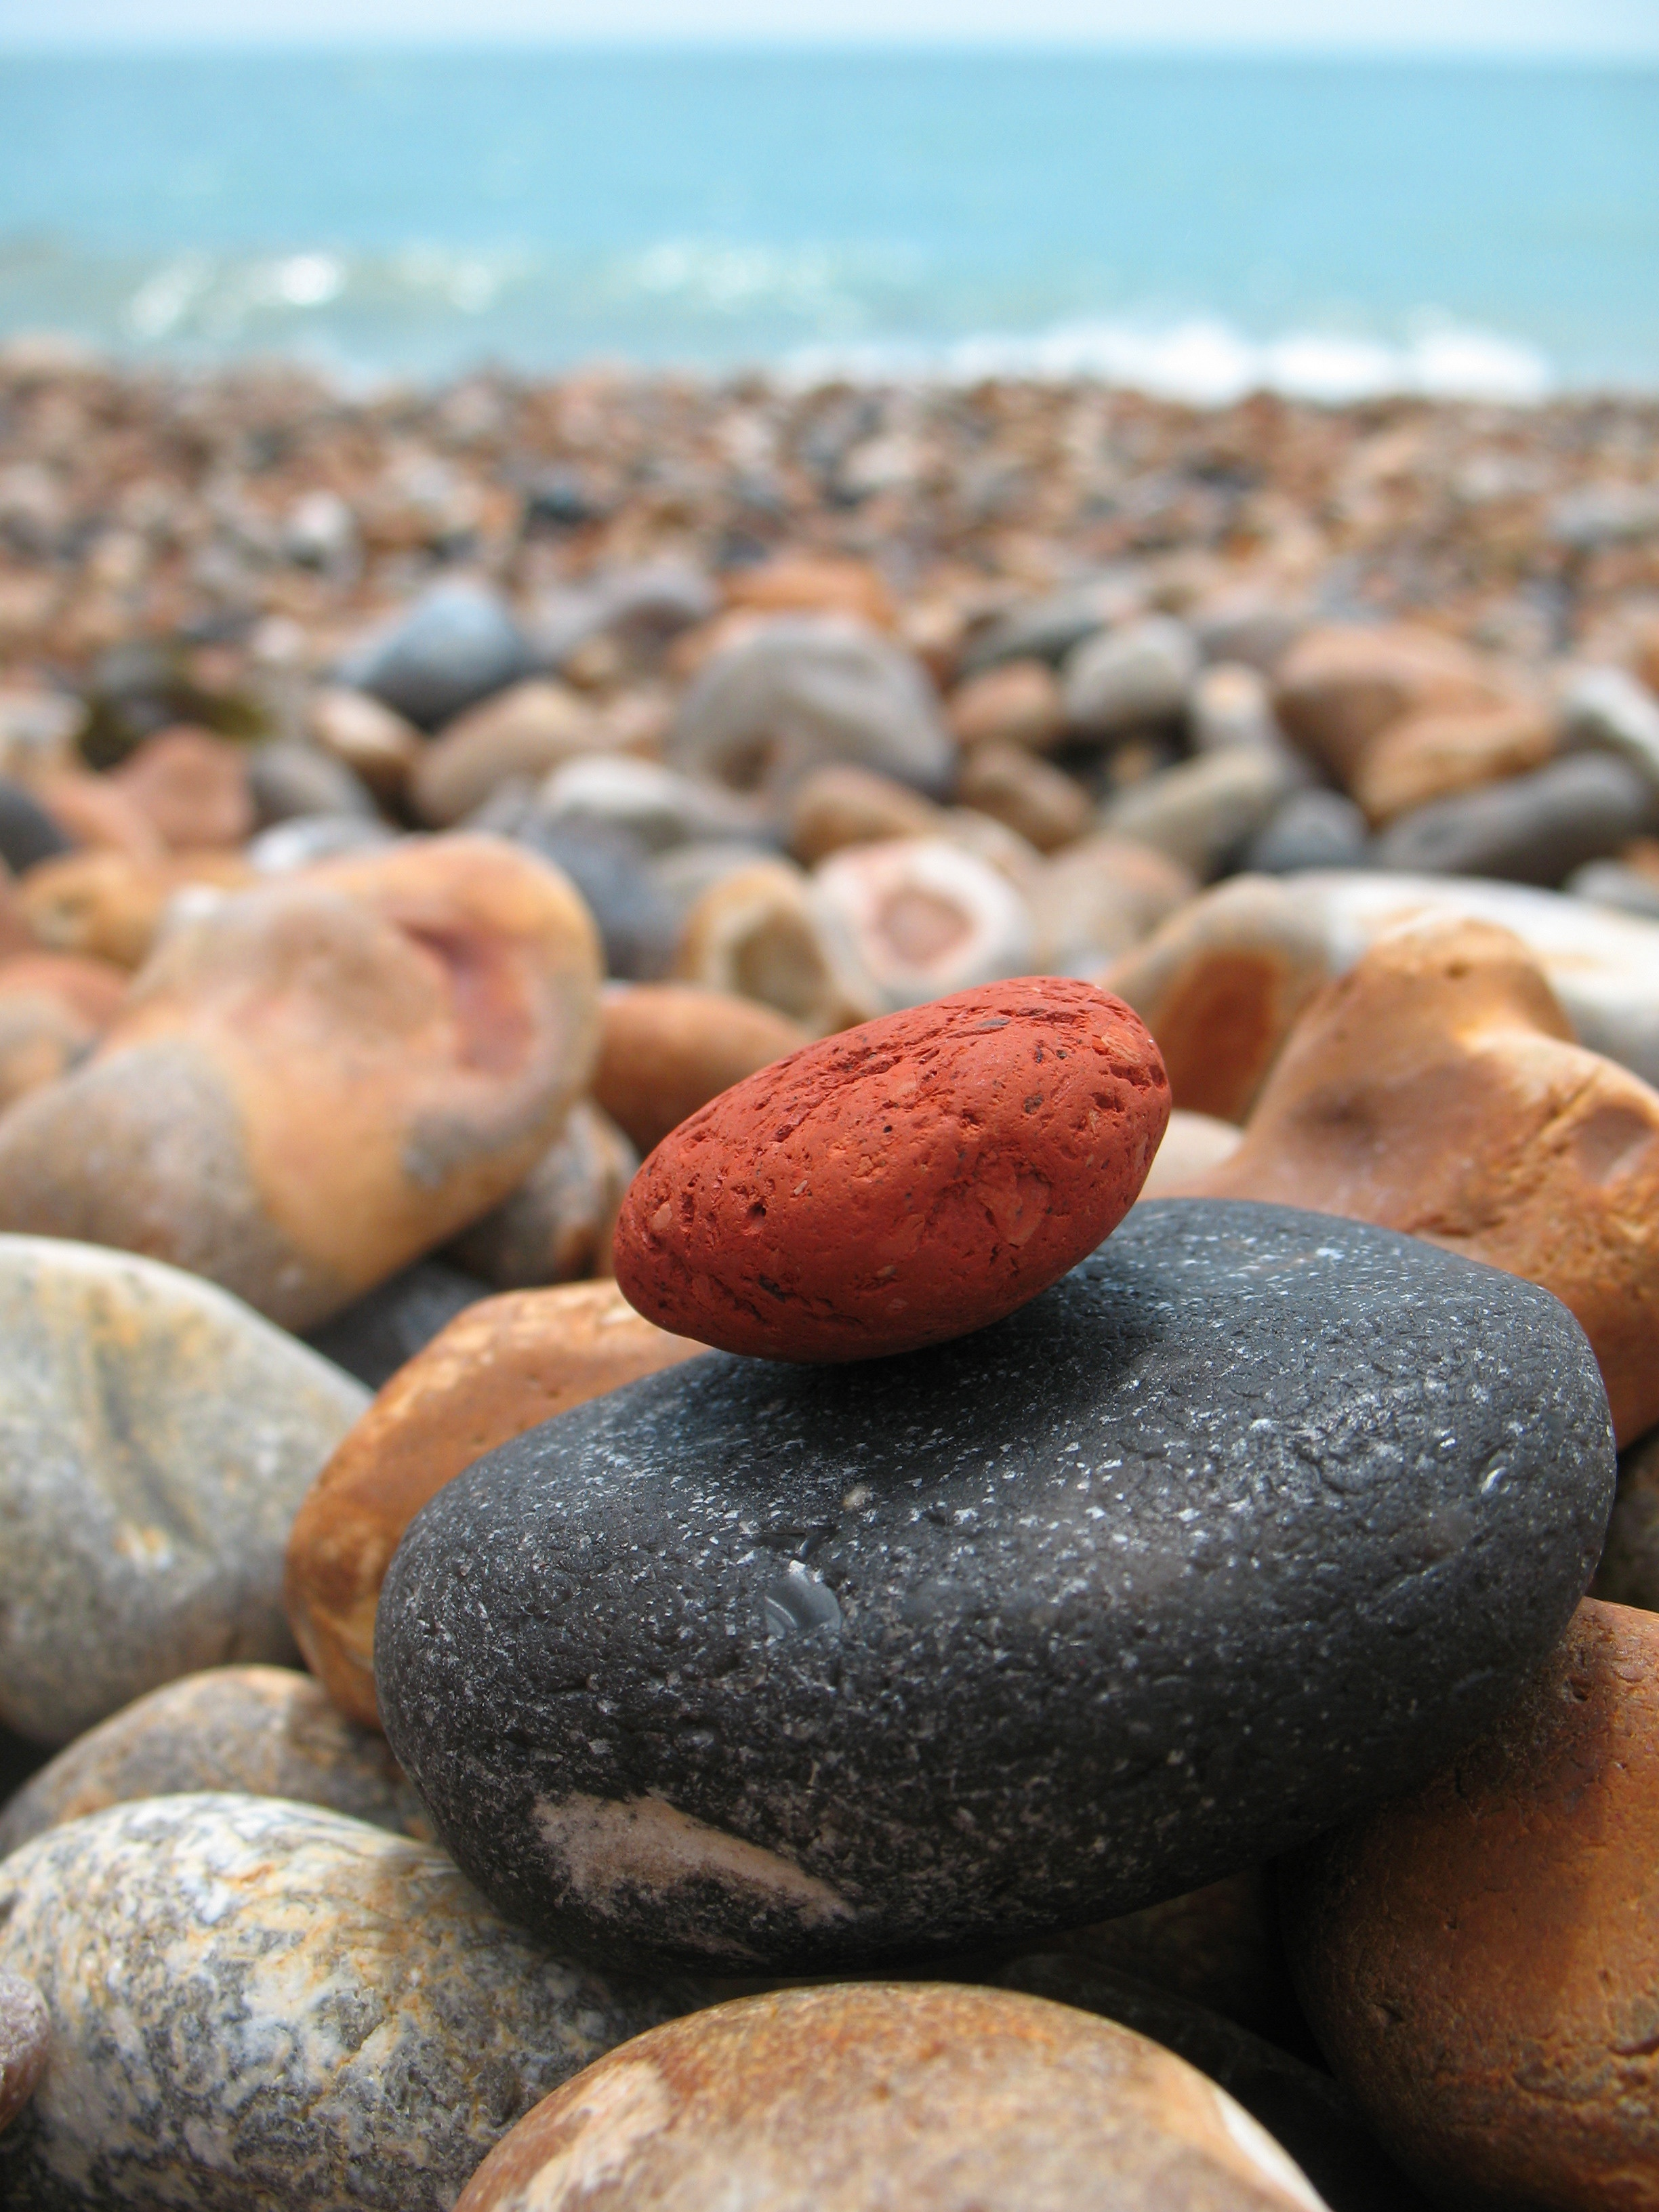 Rocks at Shoreline in an Article About Stopping Gang and Youth Violence and the Safe and Thriving Communities Program